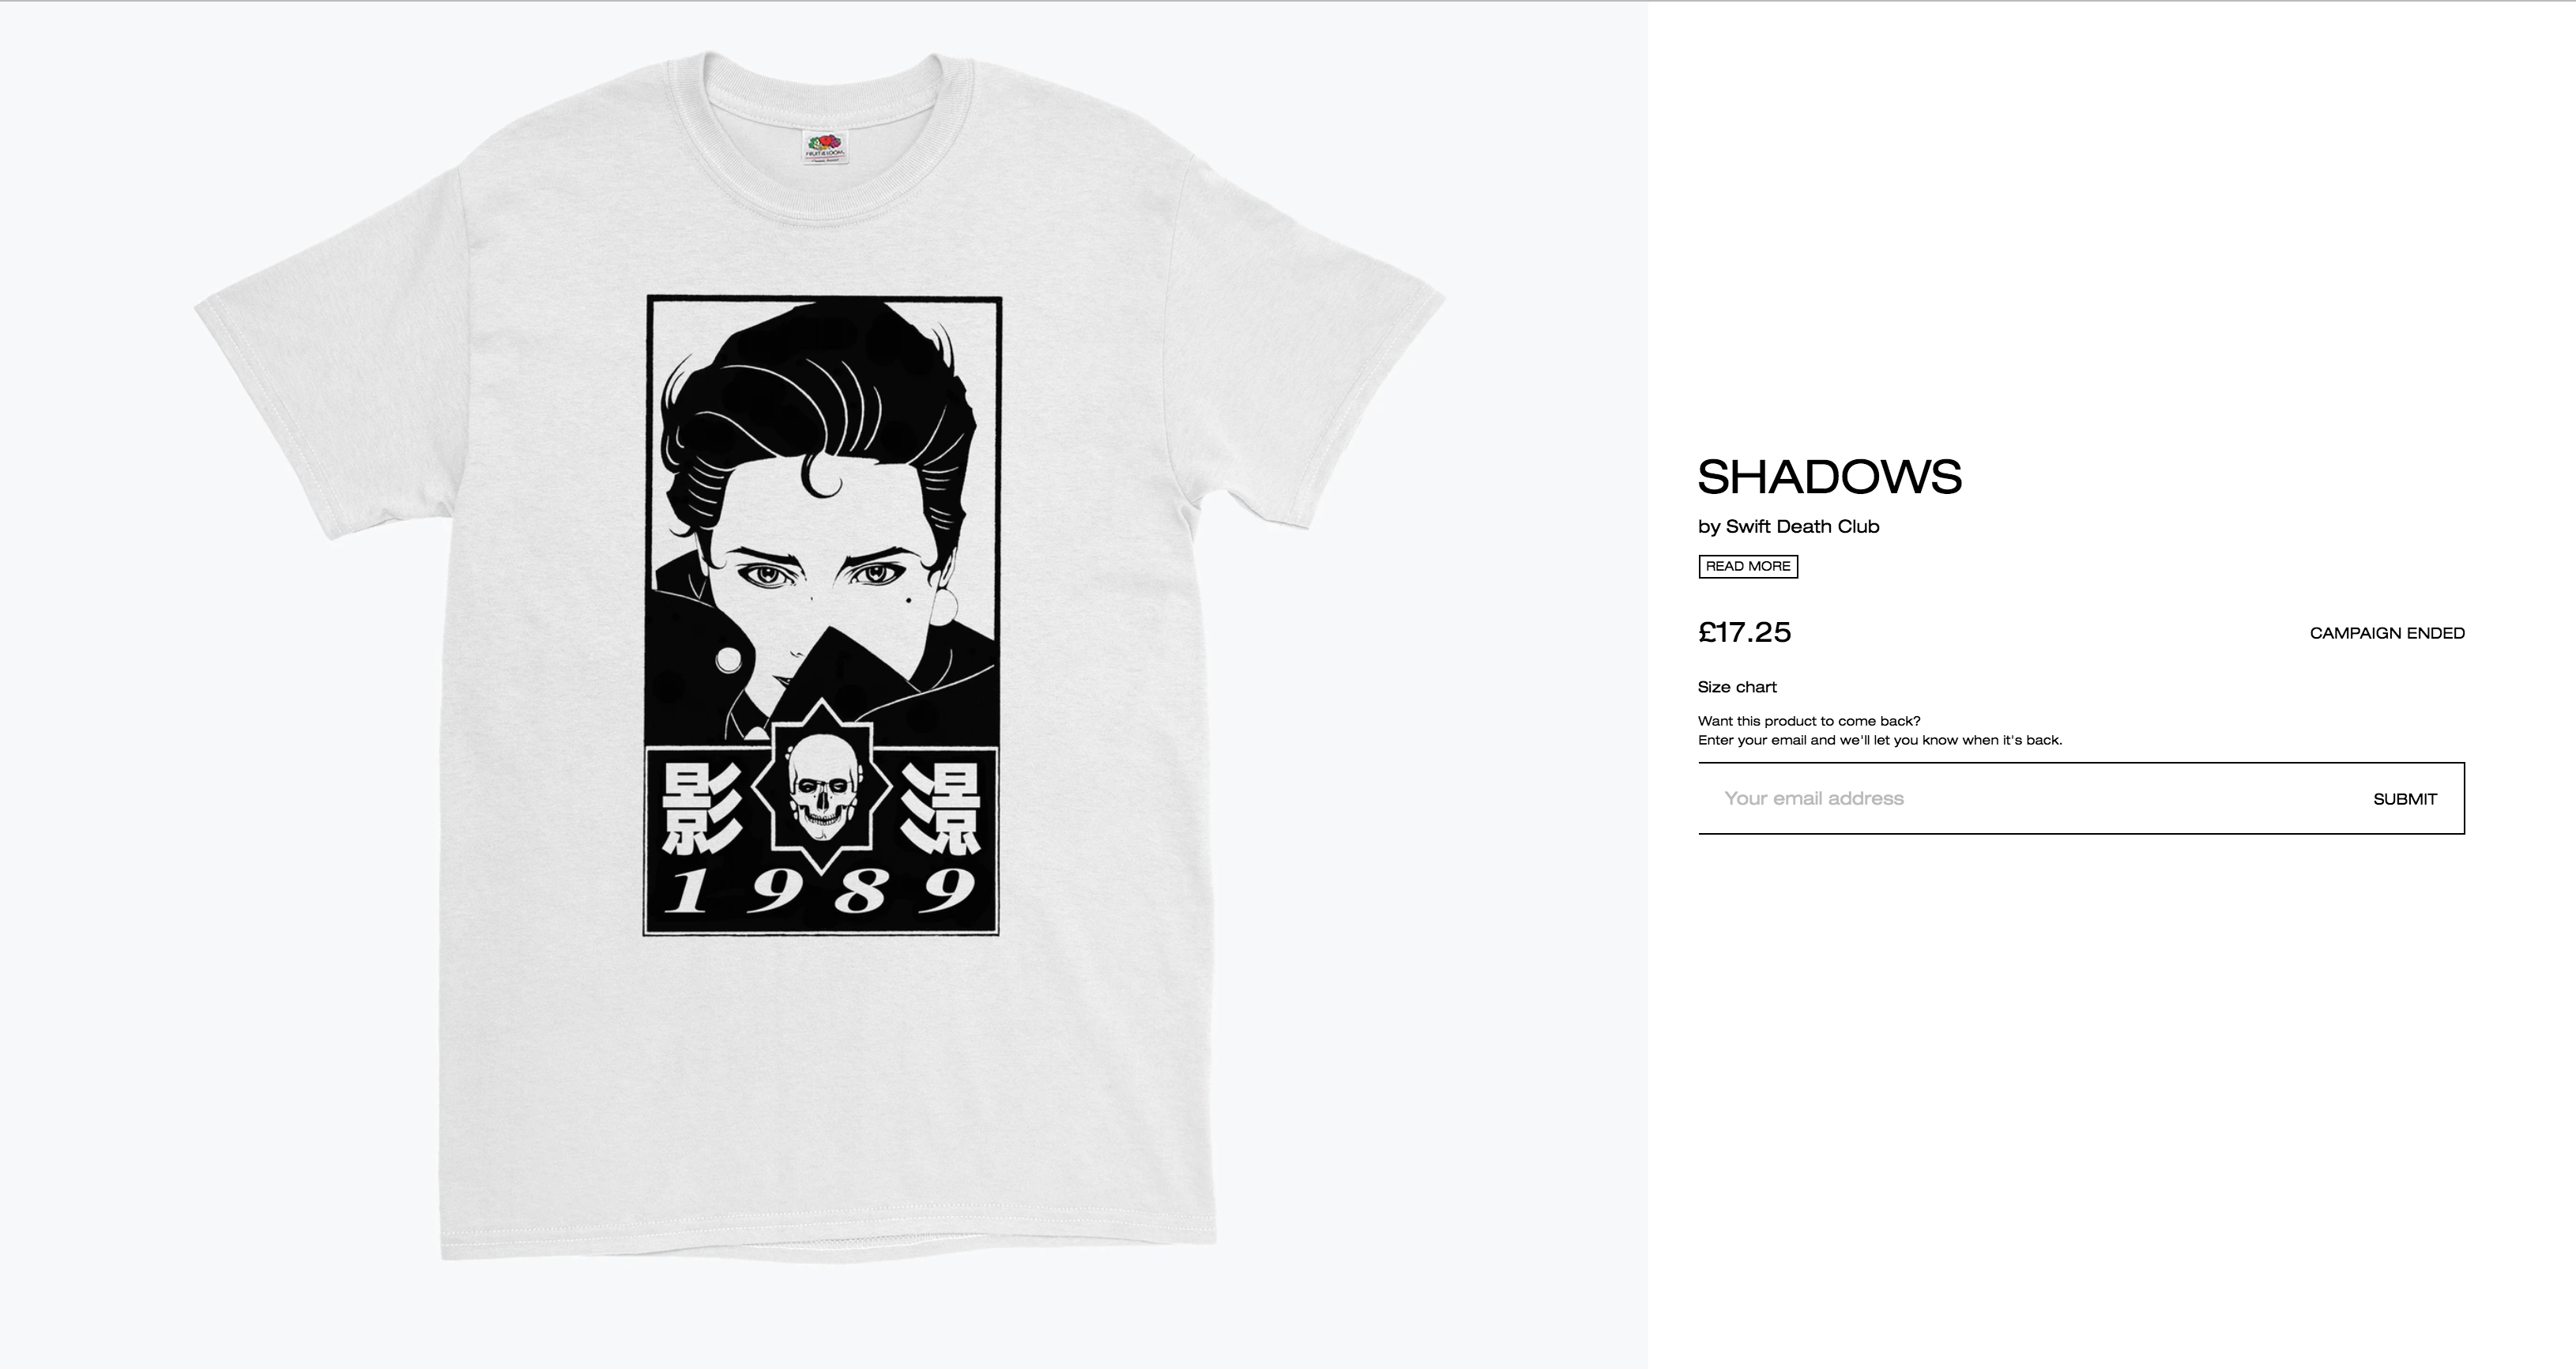 Shane Swift's 'Shadows' tee released in a three day tee drop